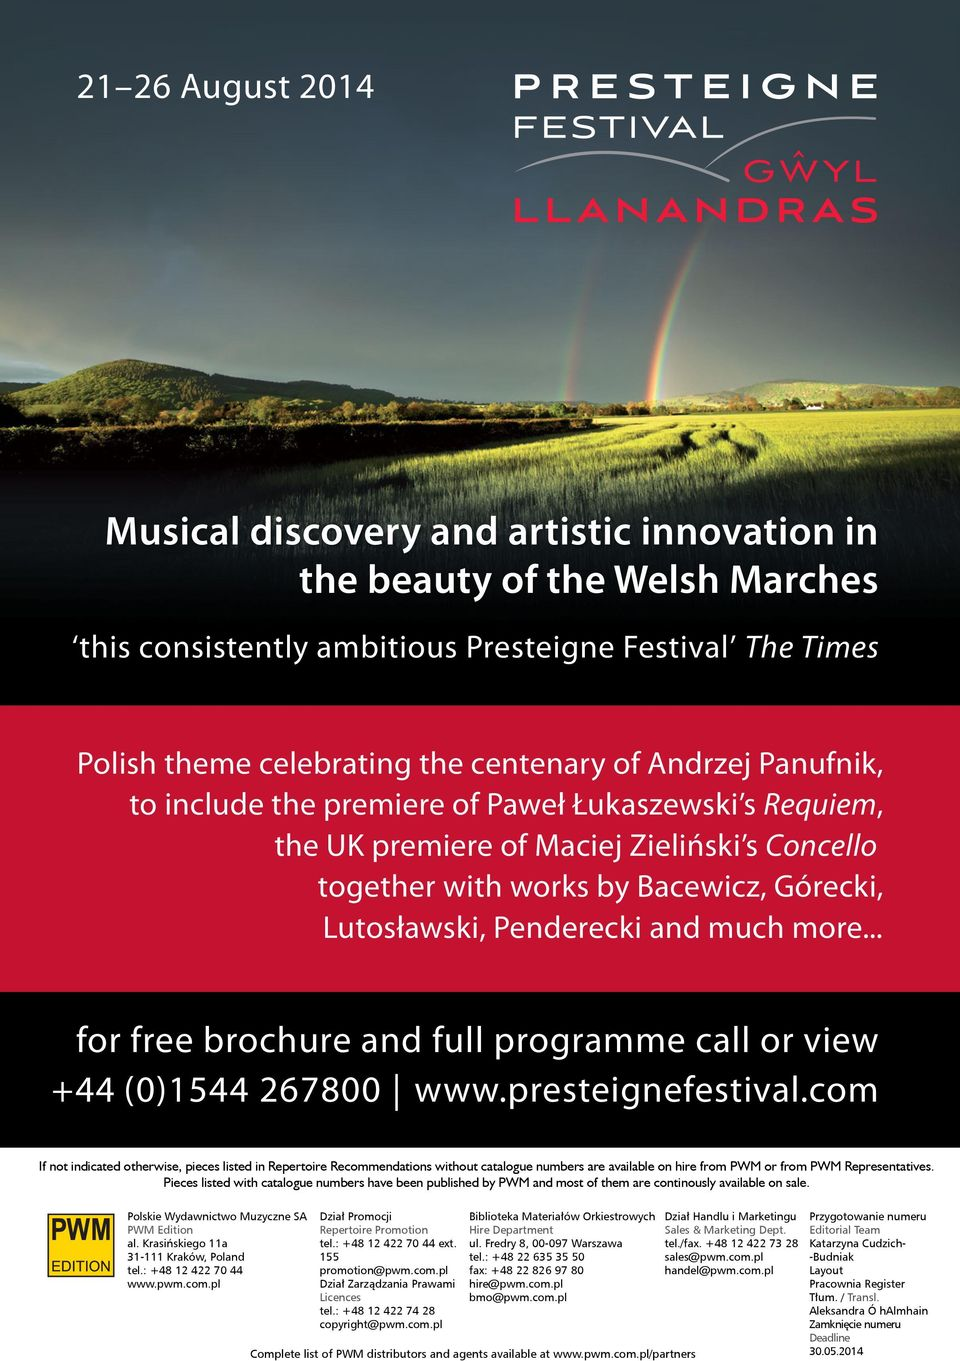 more... for free brochure and full programme call or view +44 (0)1544 267800 www.presteignefestival.